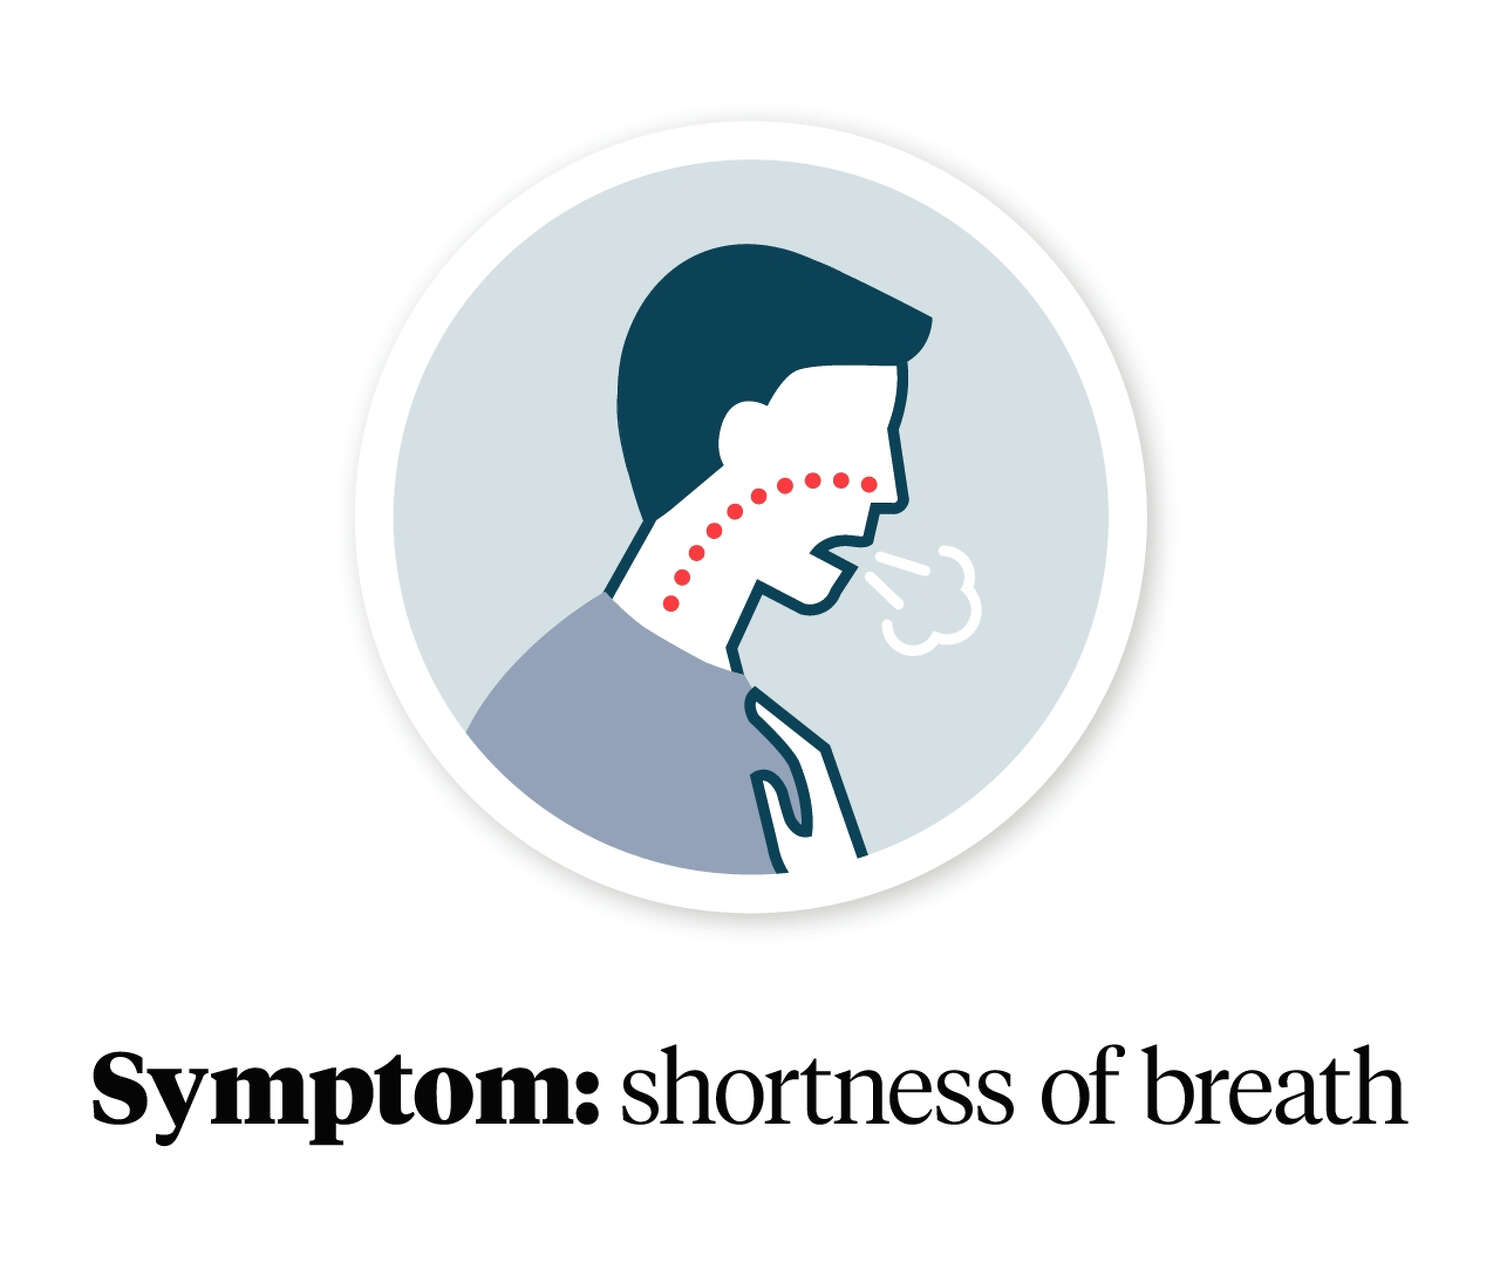 Graphic showing a person with shortness of breath